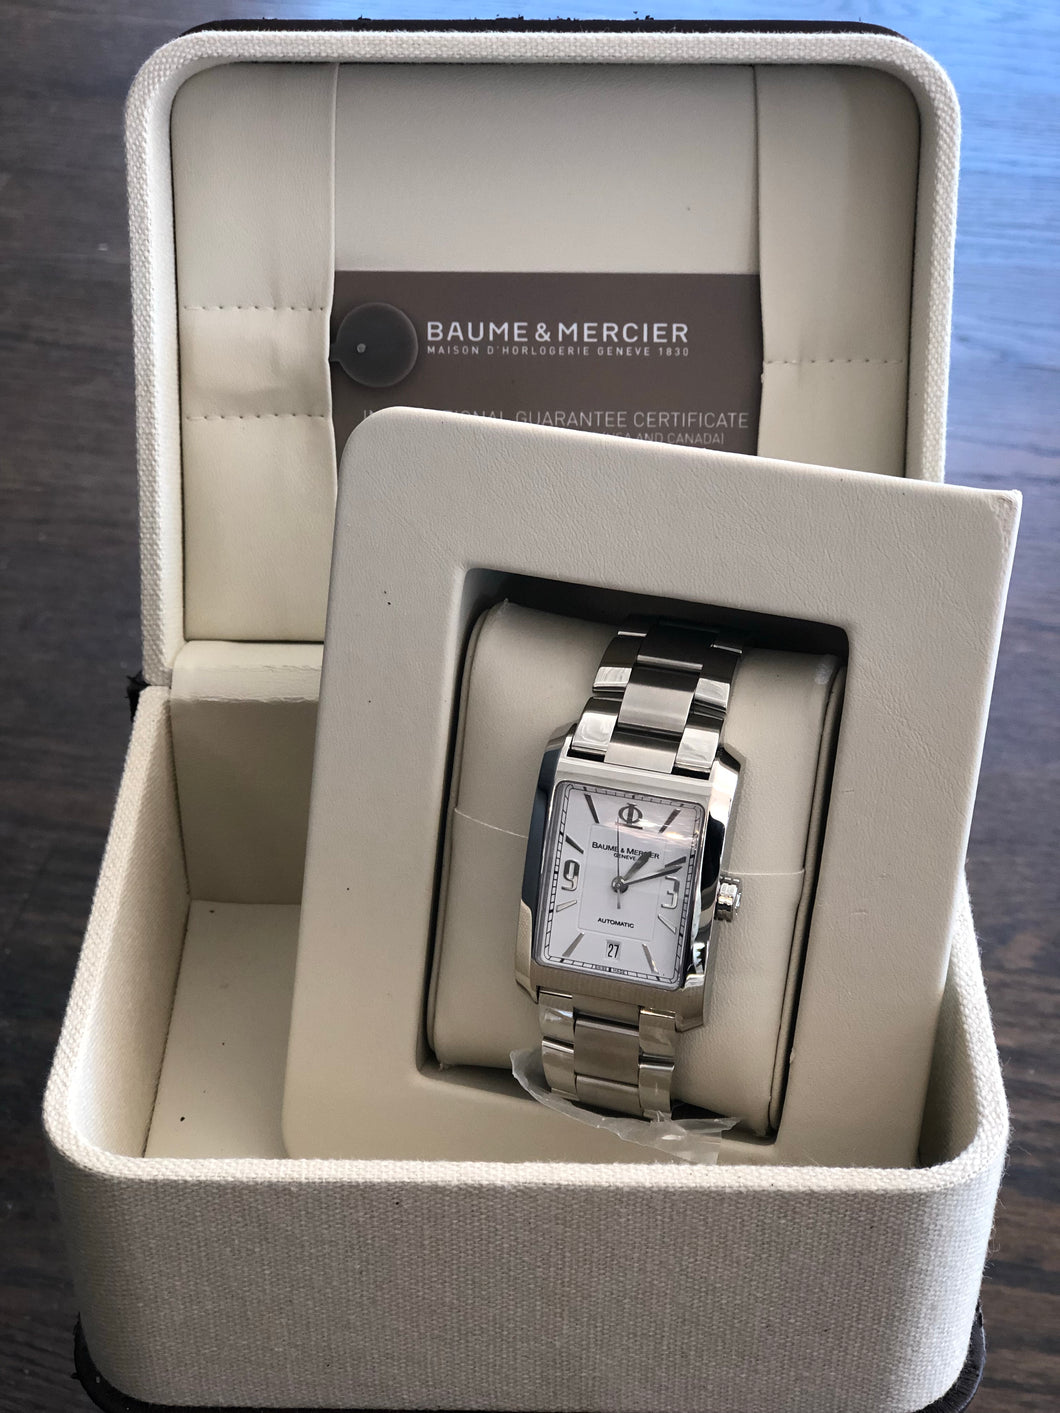 Baume & Mercier Stainless Steel Watch